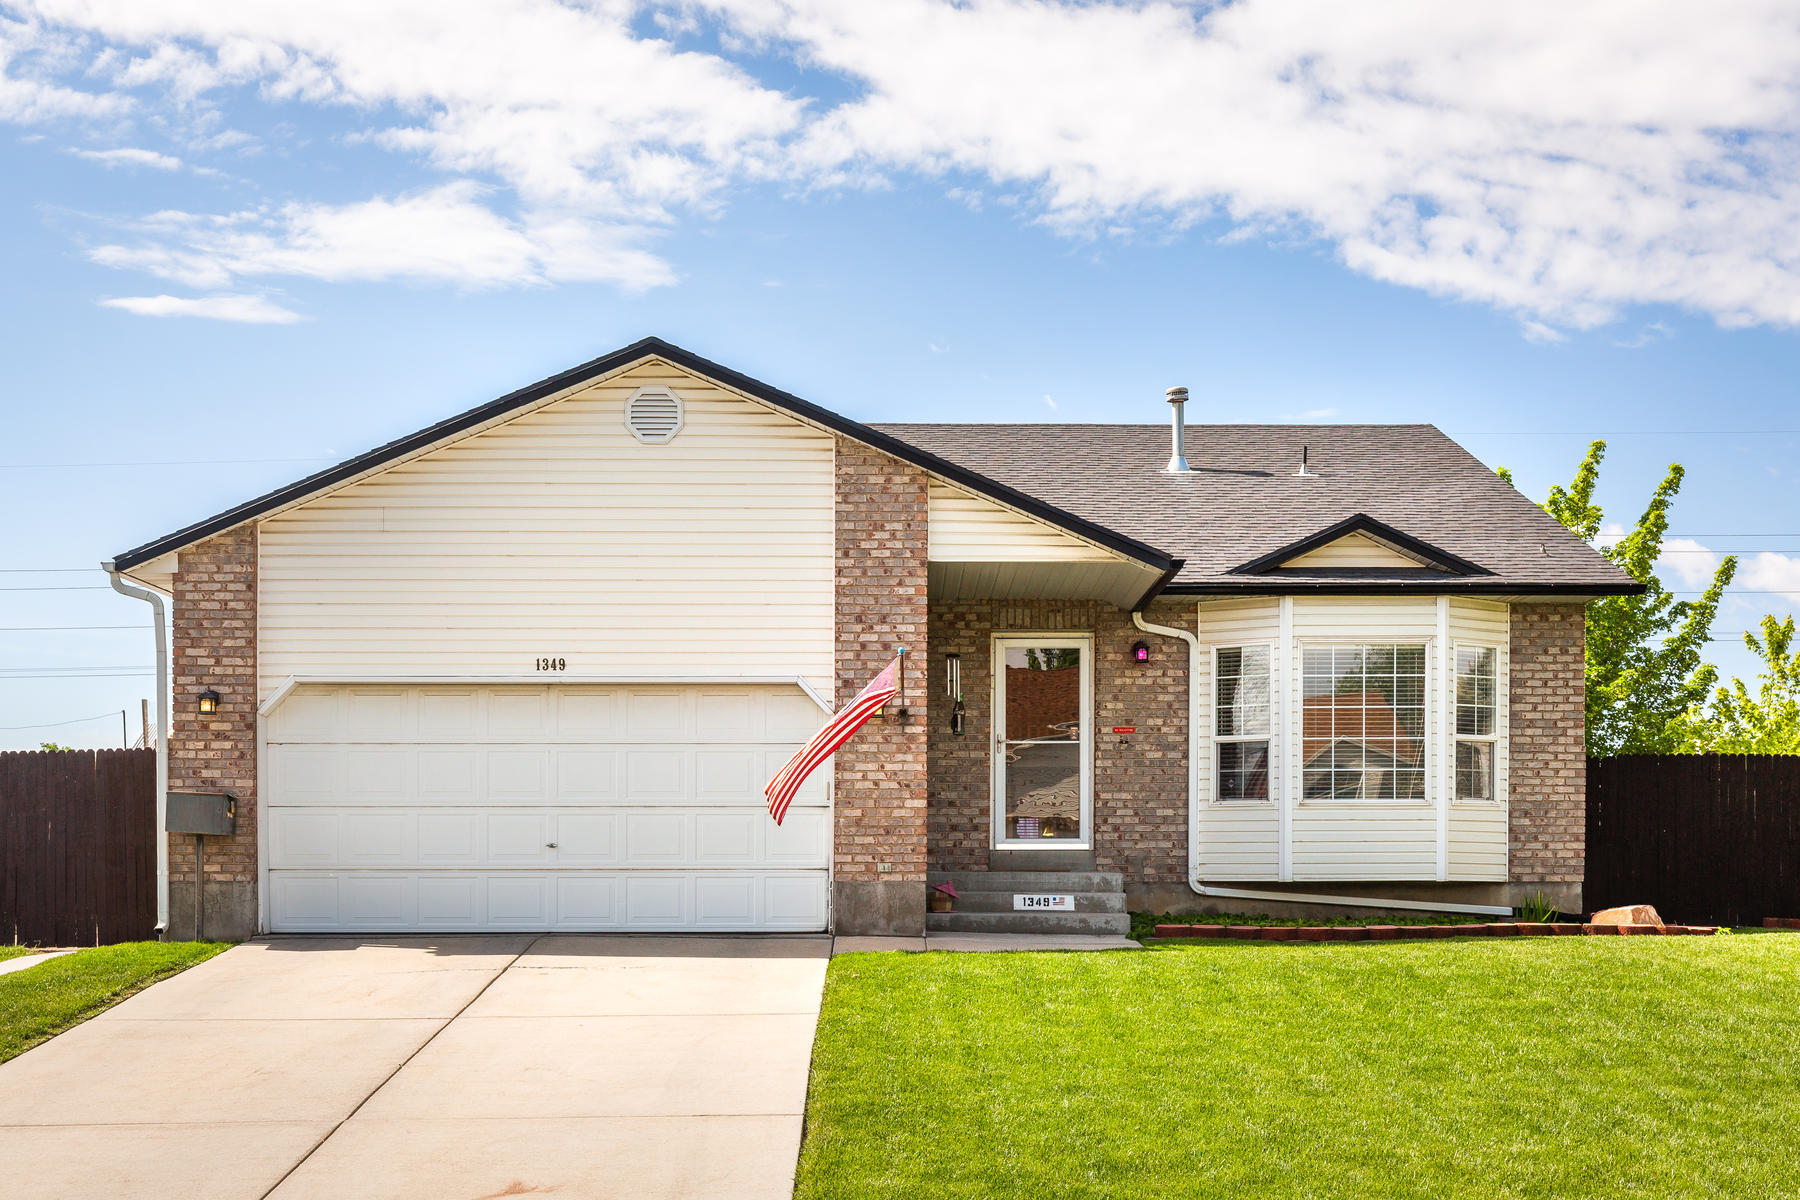 Single Family Homes for Sale at Great Multi-Level Home 1349 W Highland Hollow Dr West Jordan, Utah 84084 United States